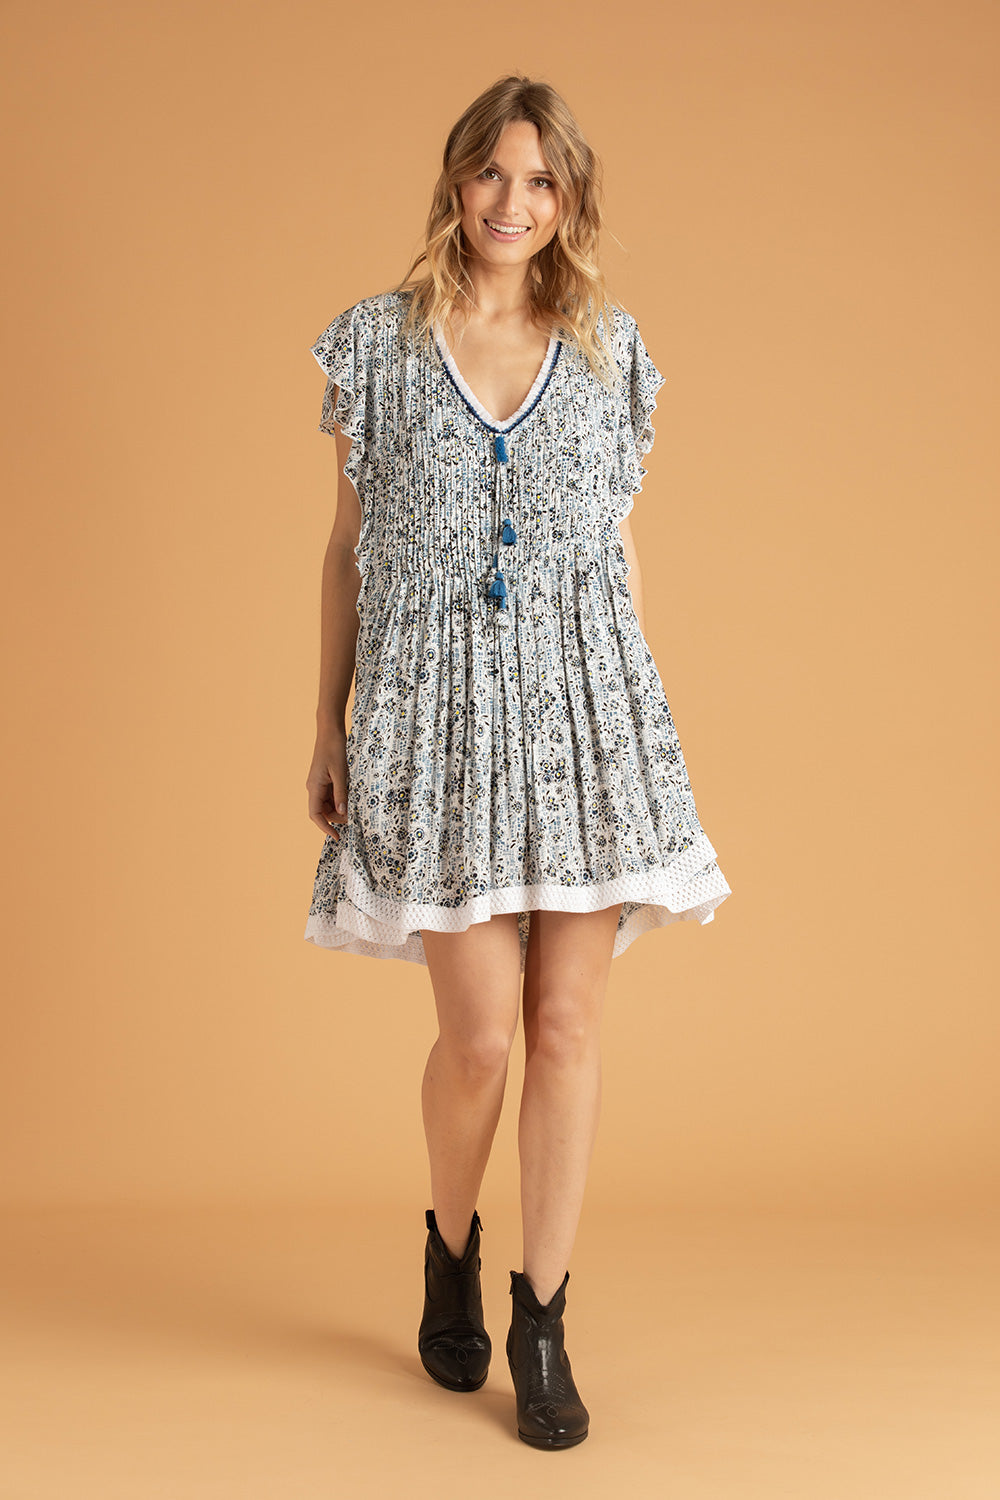 Mini Dress Mila Lace Trimmed - White Blue Amarylis